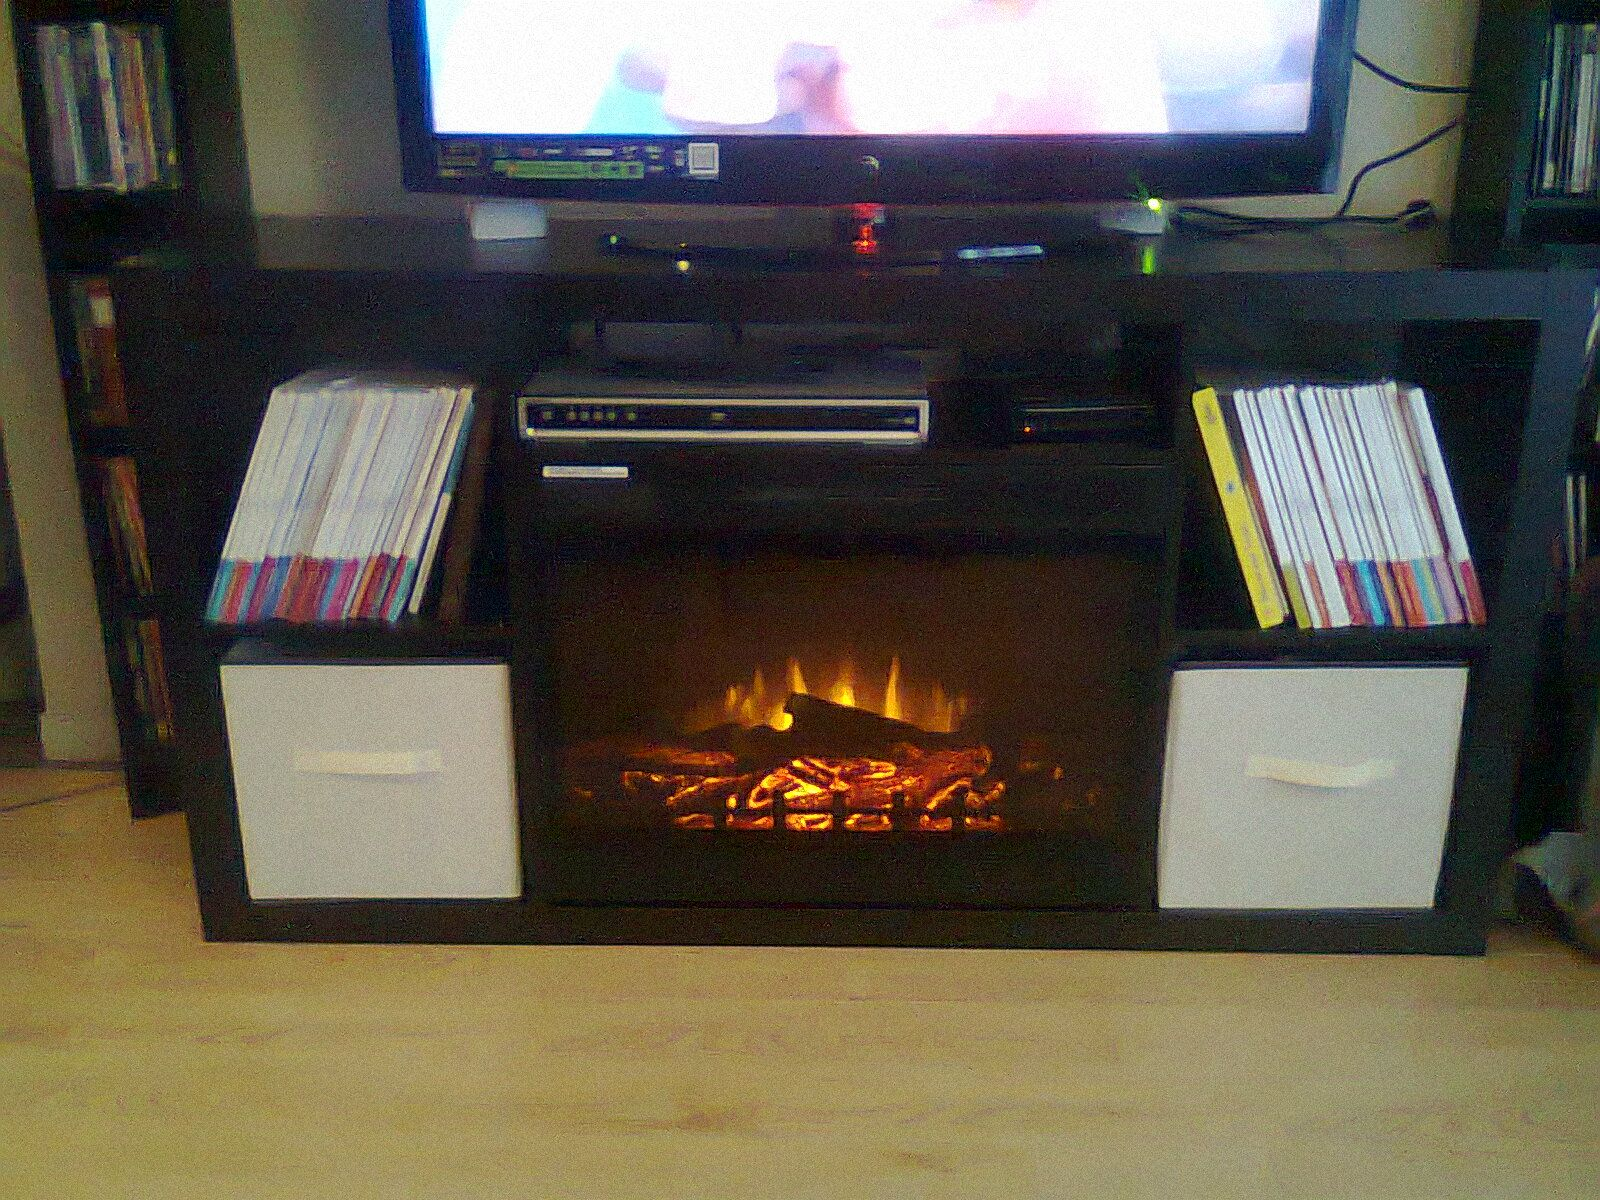 perfect height for TV and storing xBox/stereo - Ikea bookcase   House and  Home   Pinterest   TVs, We